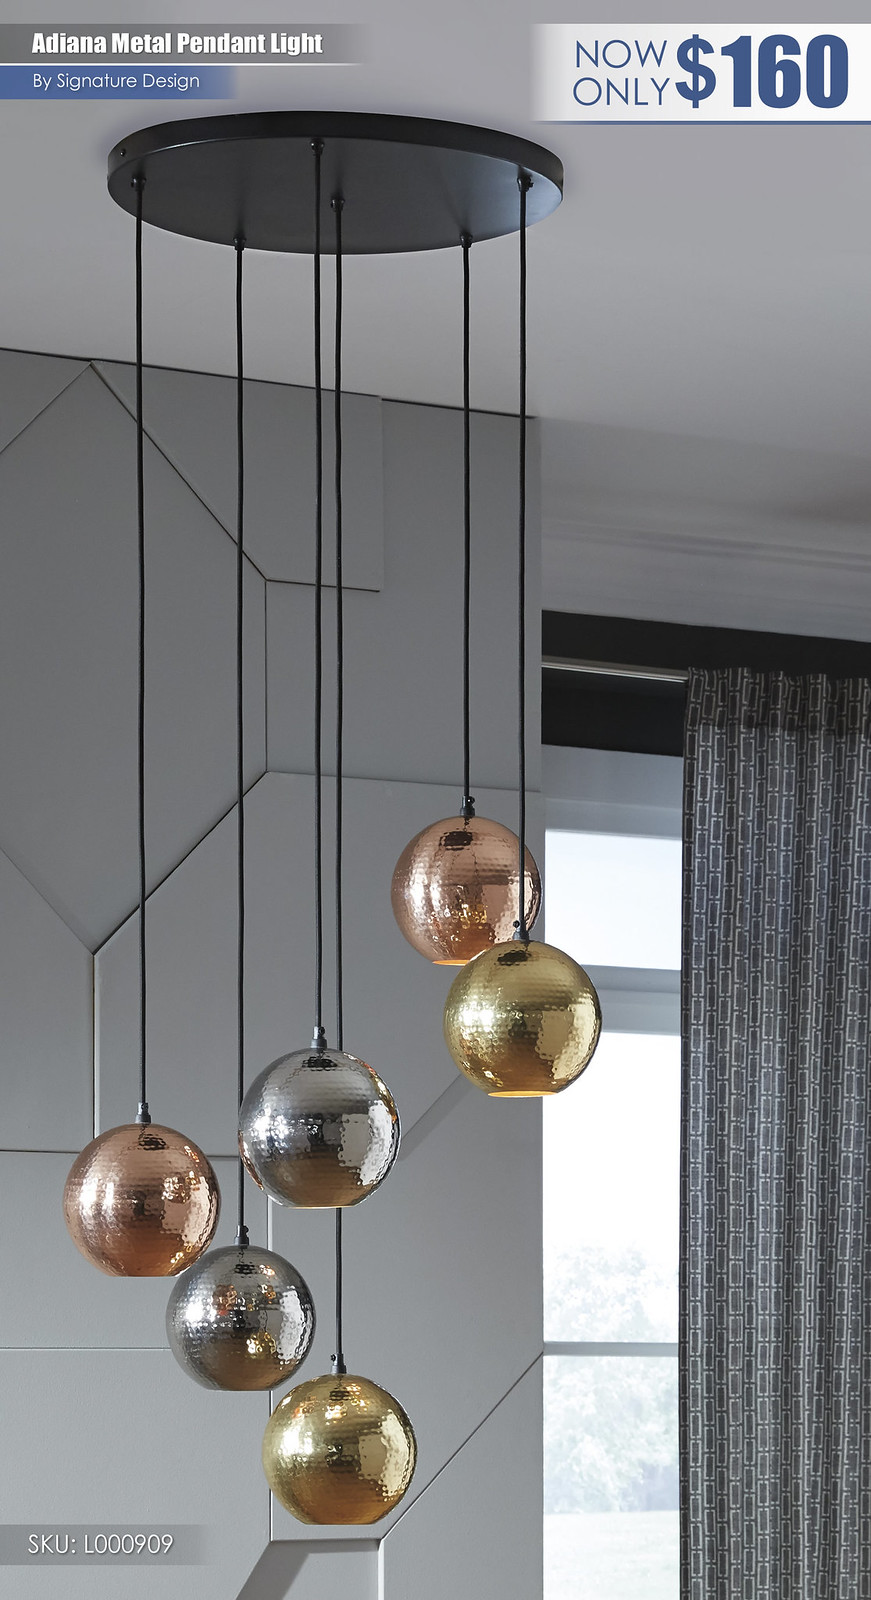 Adiana Metal Pendant Light_L000909